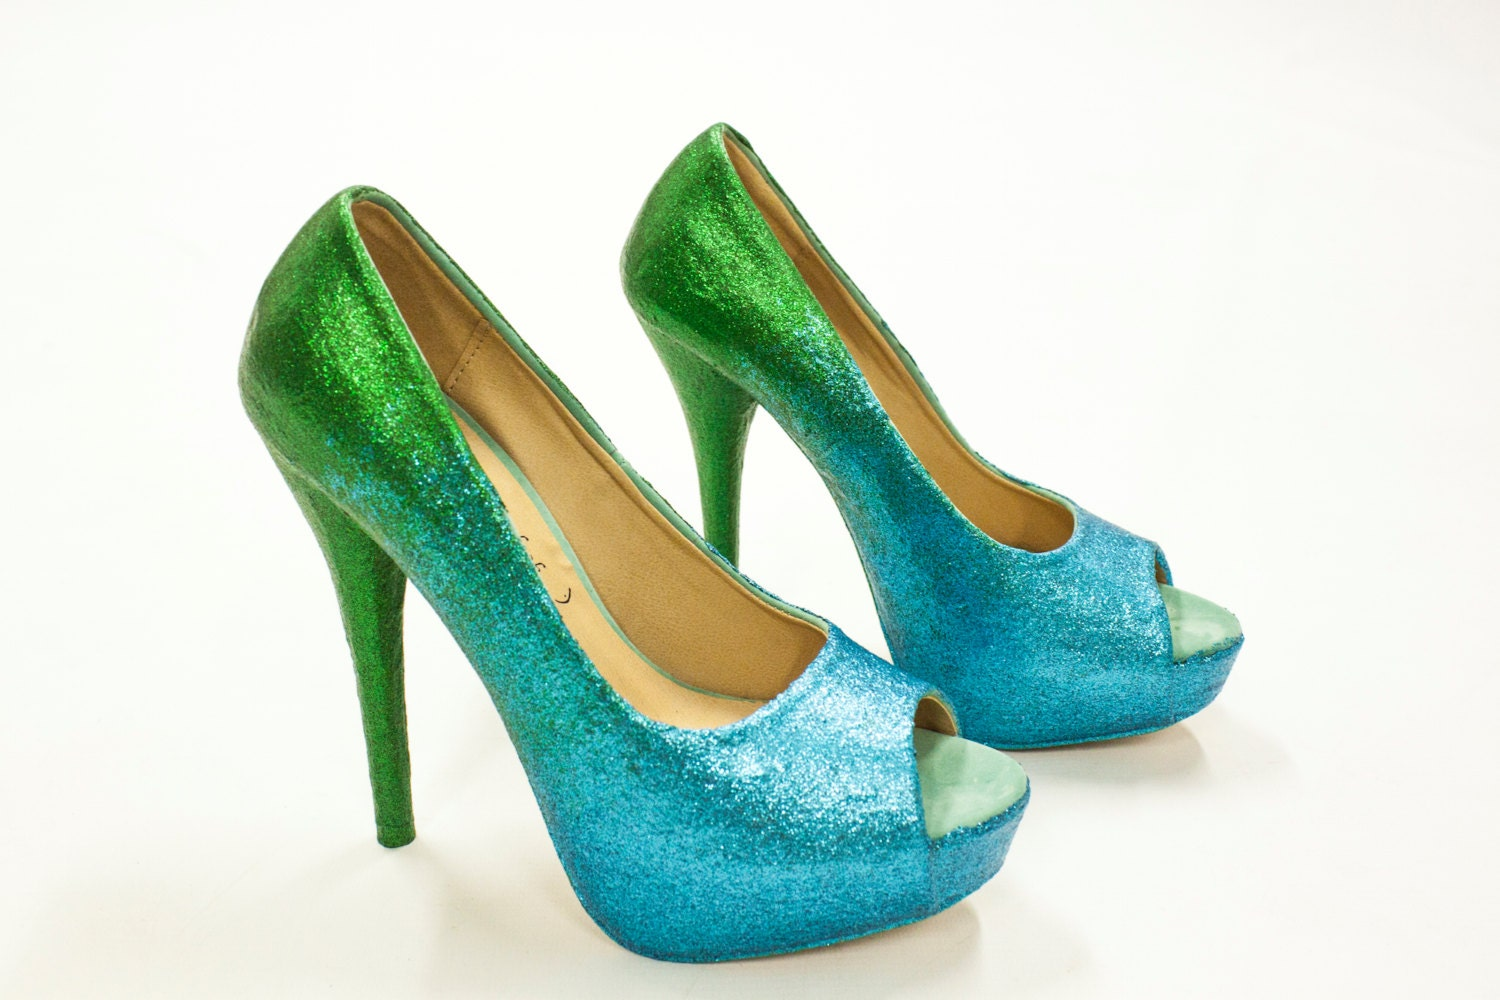 Green And Blue Heels